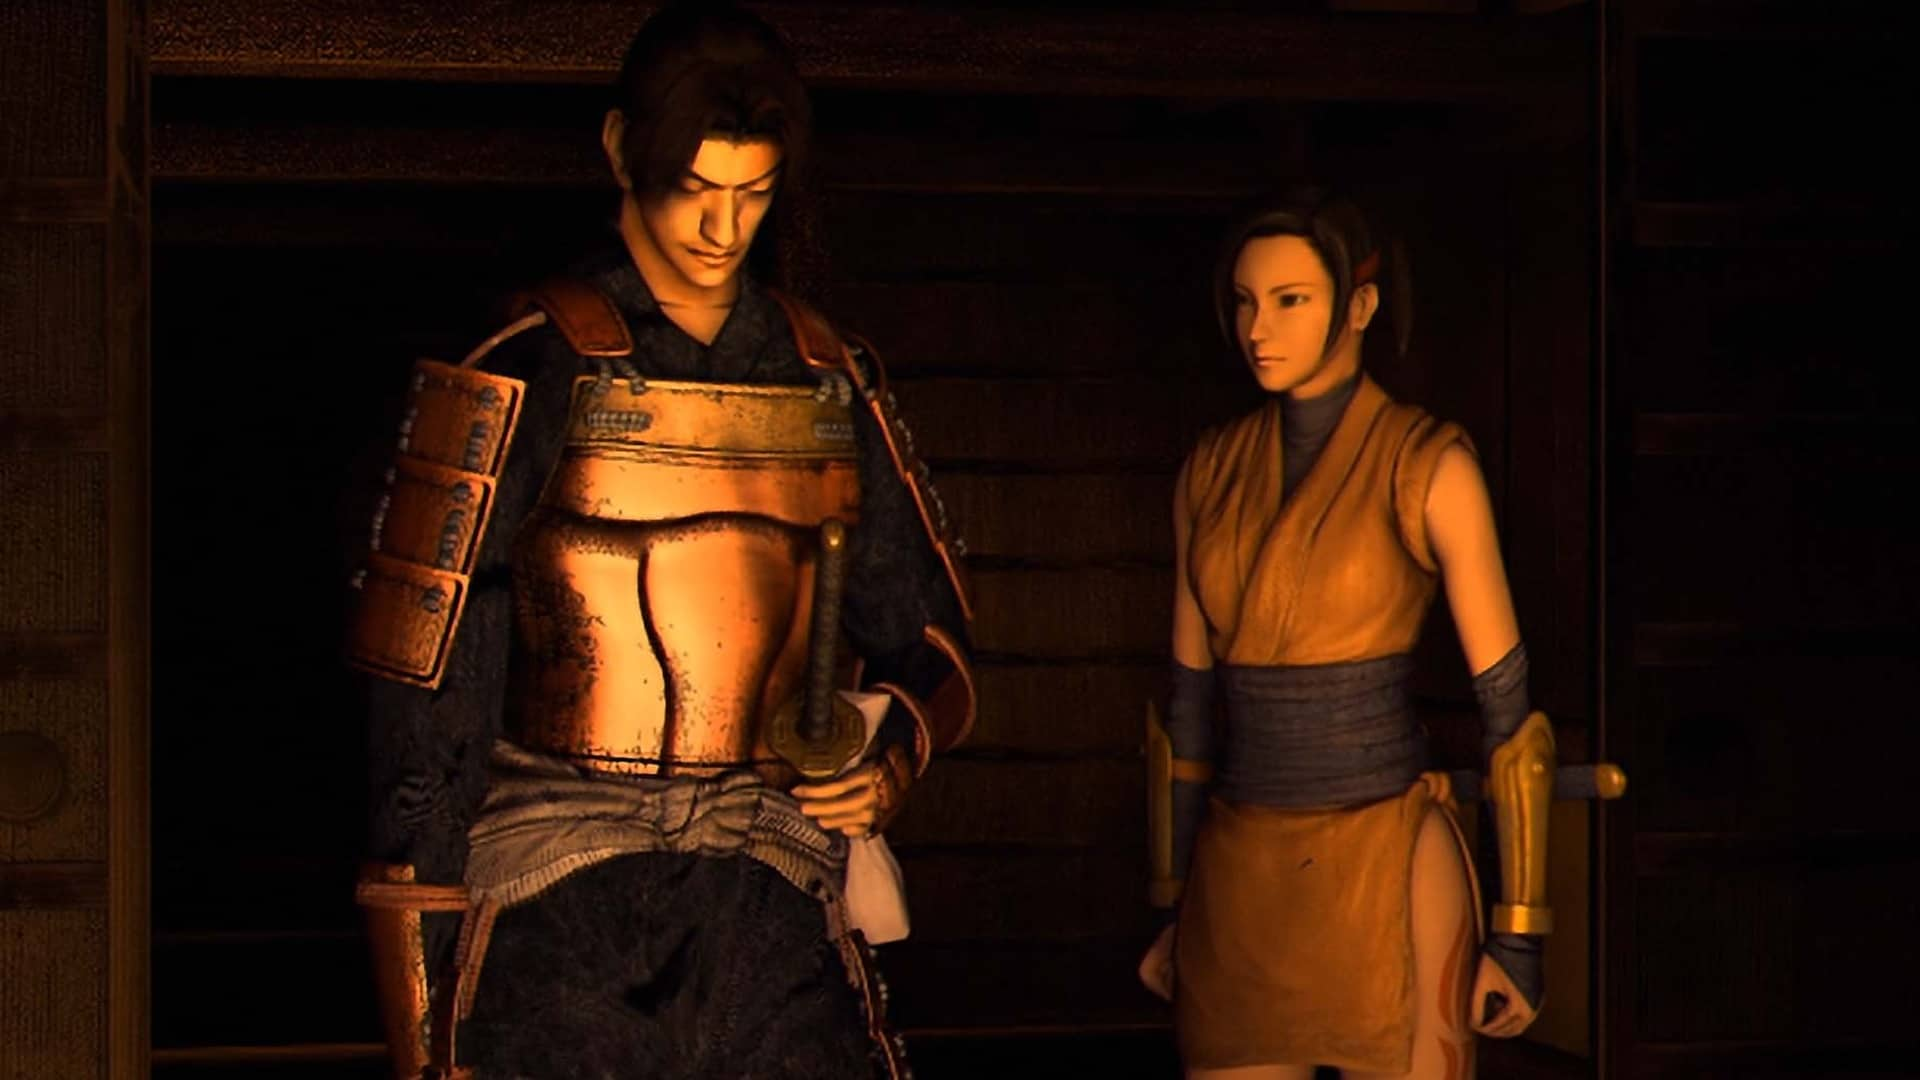 Capcom Releases Epic Onimusha: Warlords Announcement Trailer 3